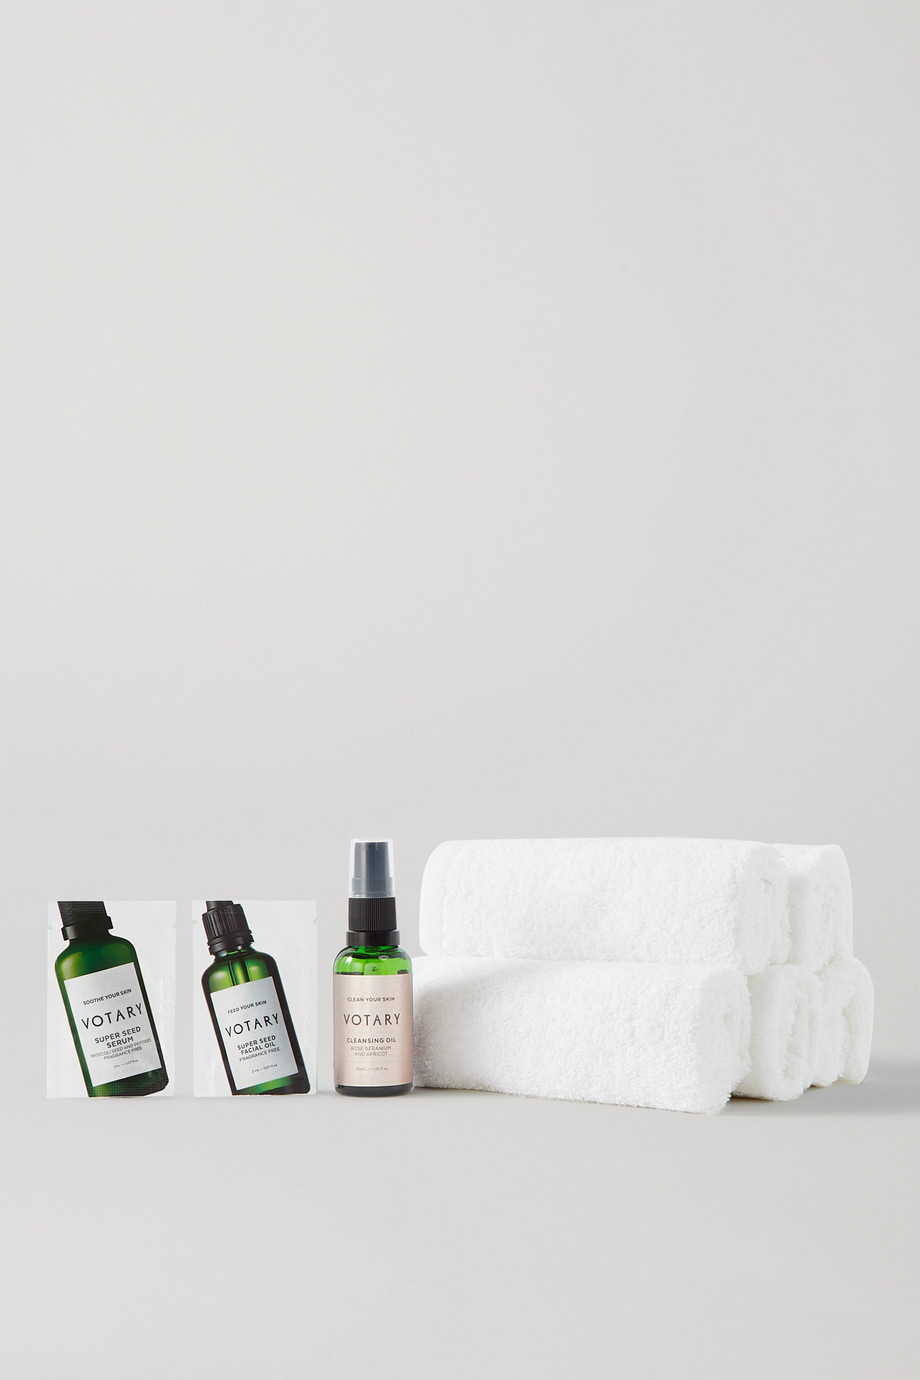 VOTARY Clean Skin Experience Set